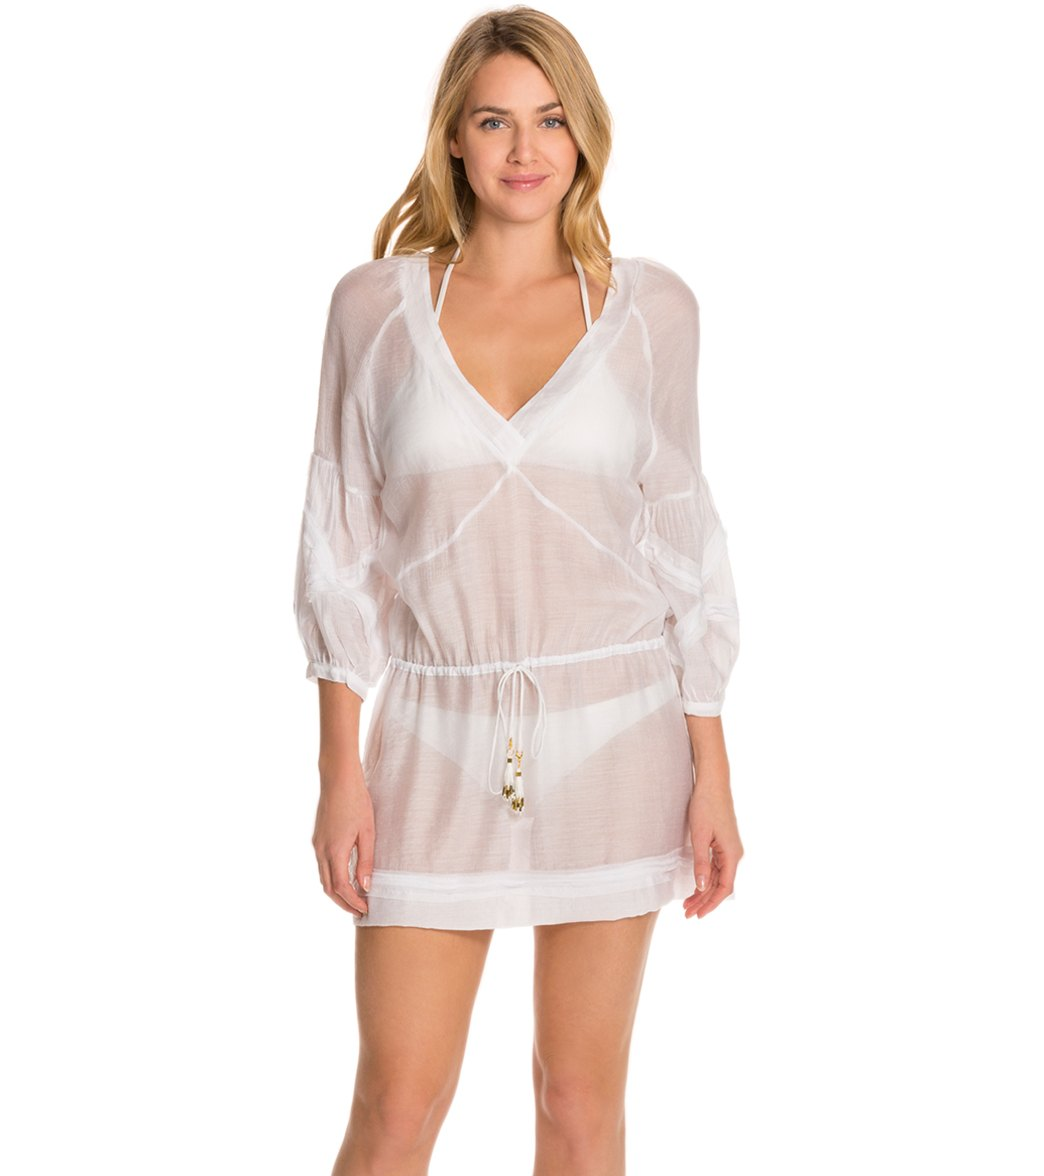 cb7c4fe5fb258 Vix Swimwear Solid White Julie Cover-Up Tunic at SwimOutlet.com - Free  Shipping